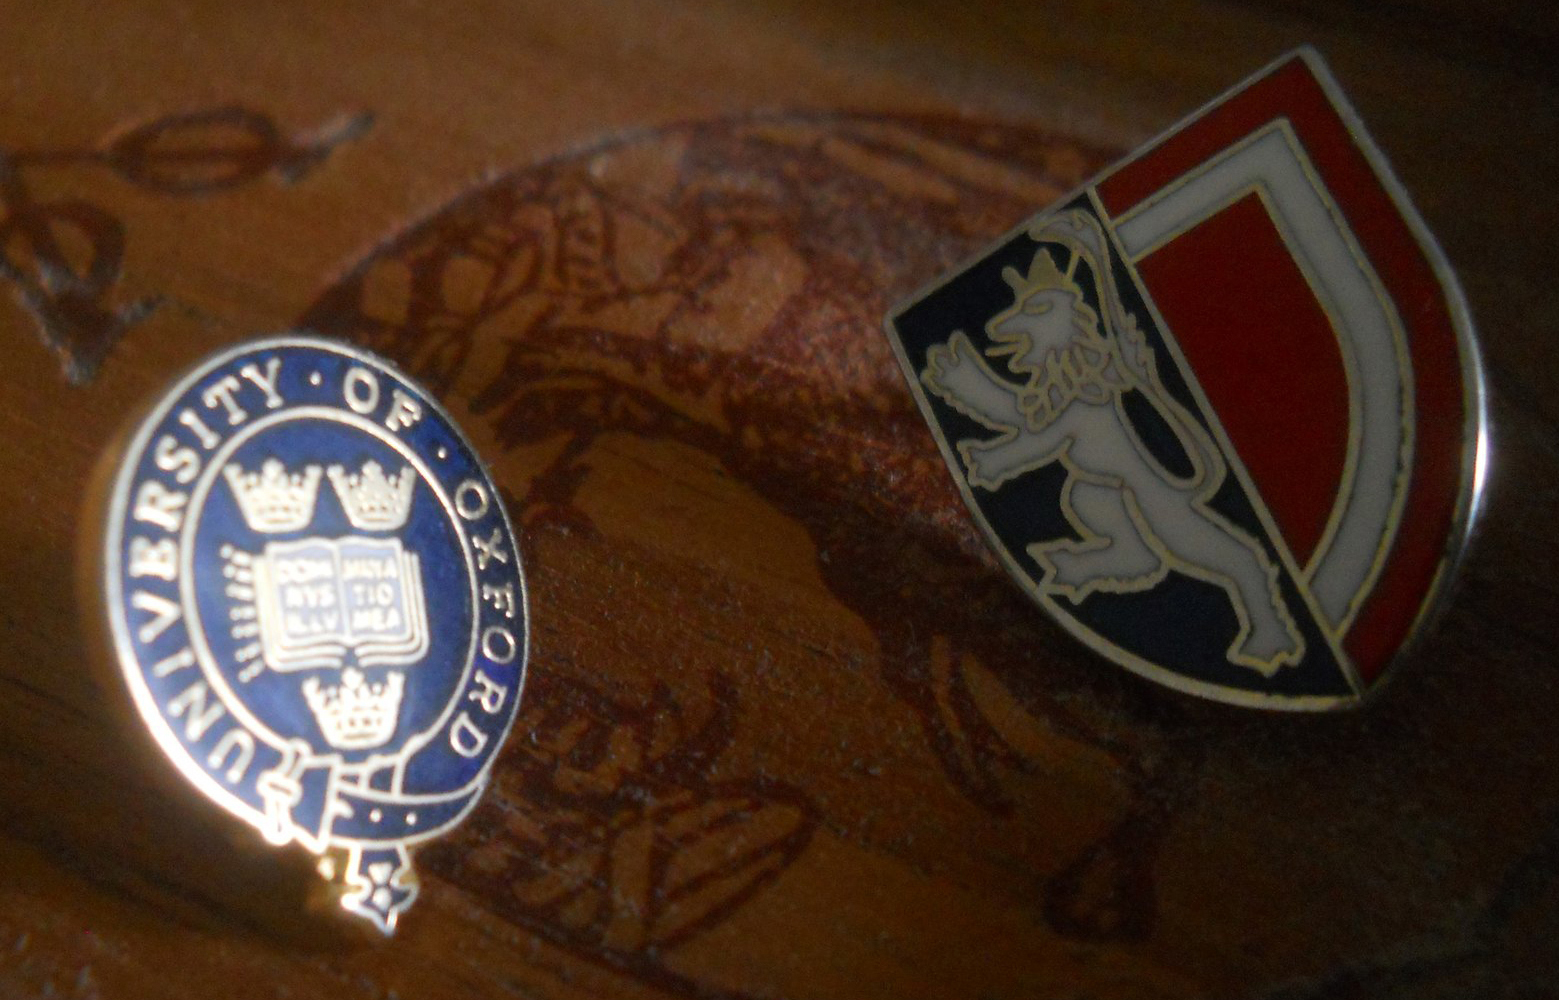 Oxford University and Balliol badges (photo: Dr Alan Taylor, Balliol 1990)